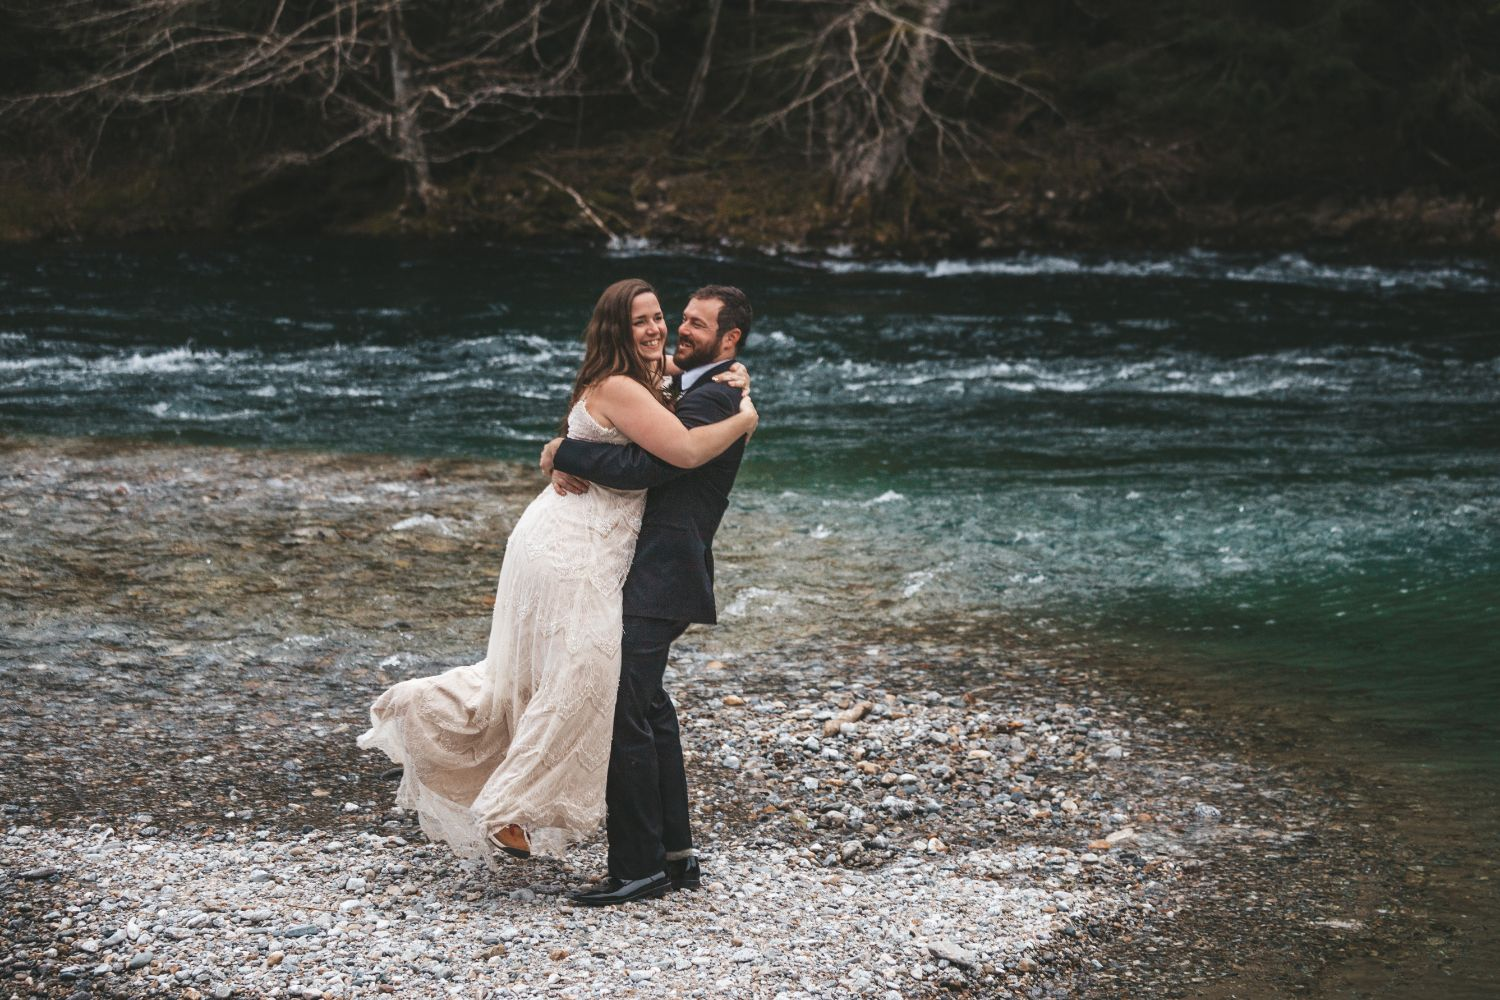 groom-lifts-bride-beautiful-river-north-cascade-winter-wedding